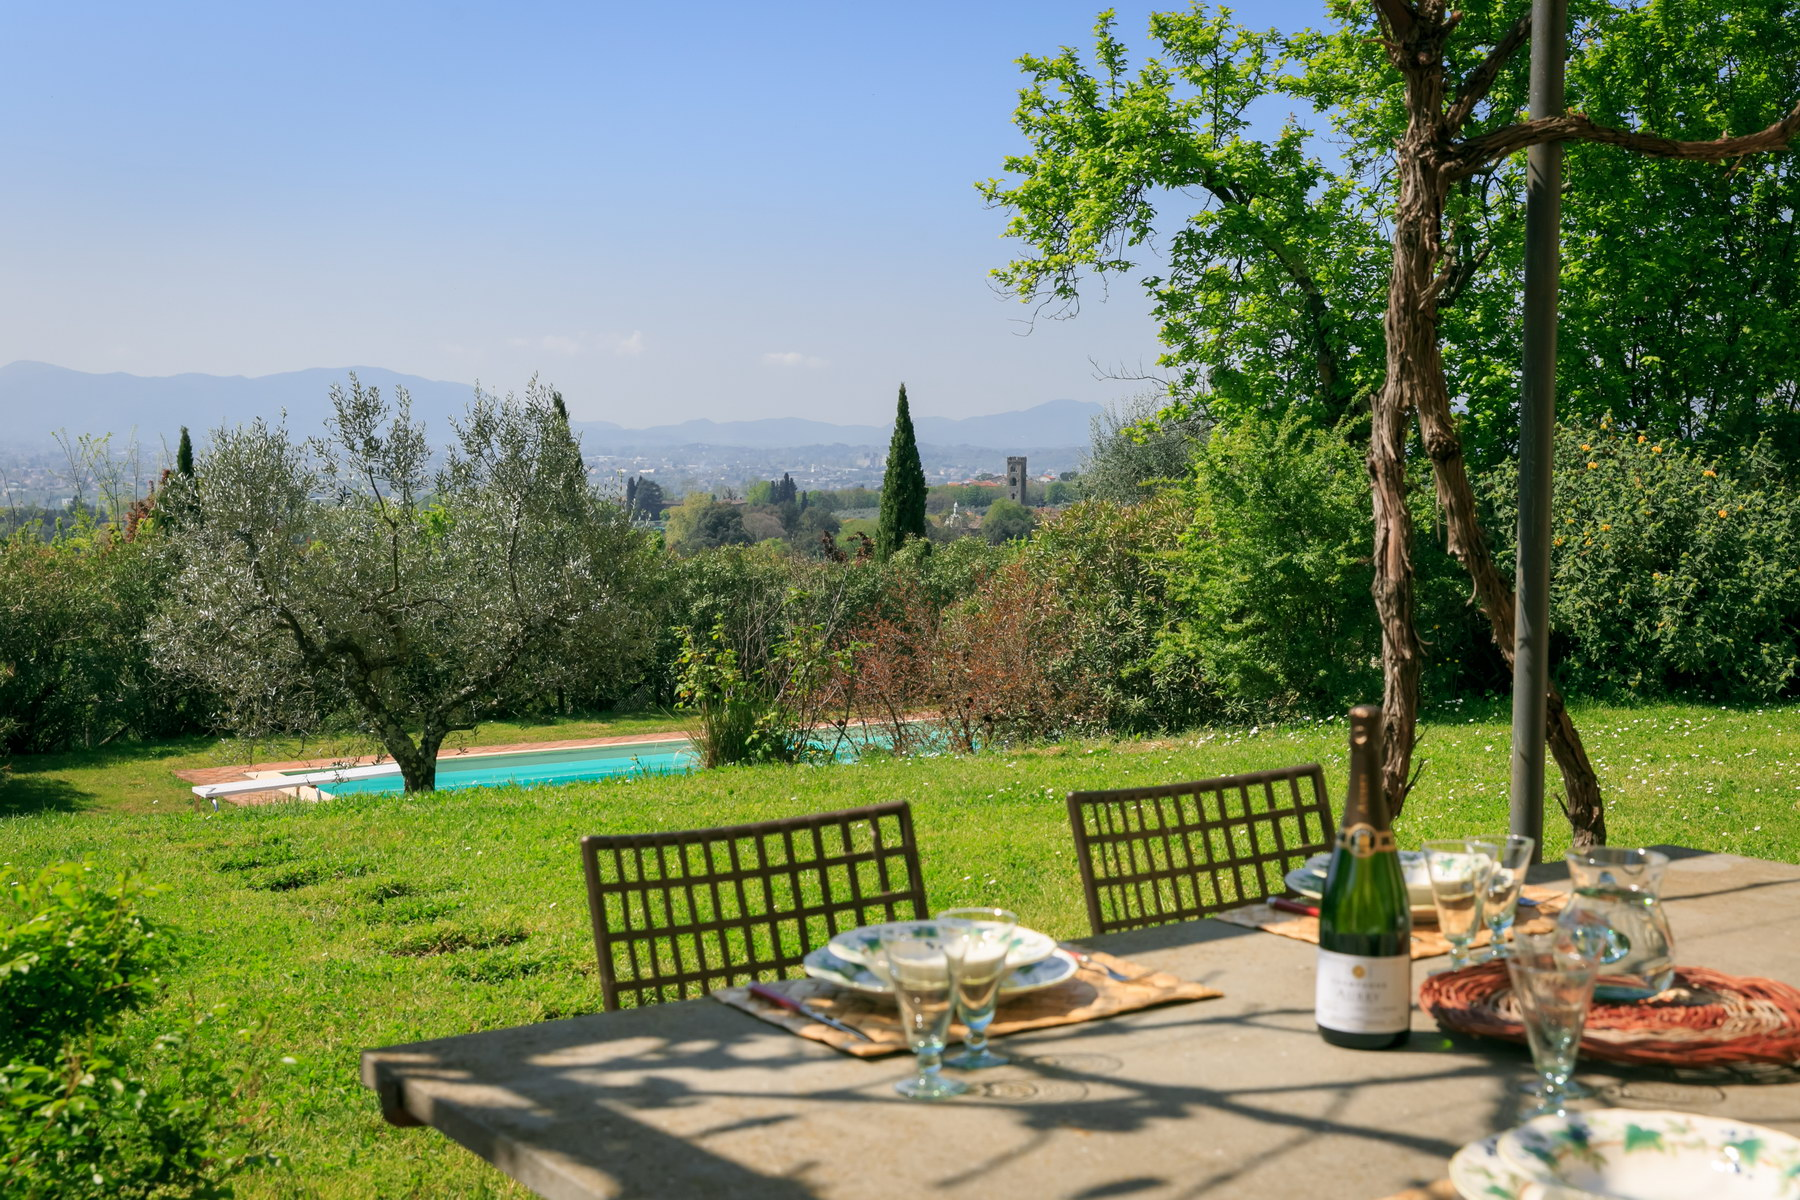 Single Family Home for Sale at Charming country house overlooking the hills of Lucca Capannori, Lucca Italy